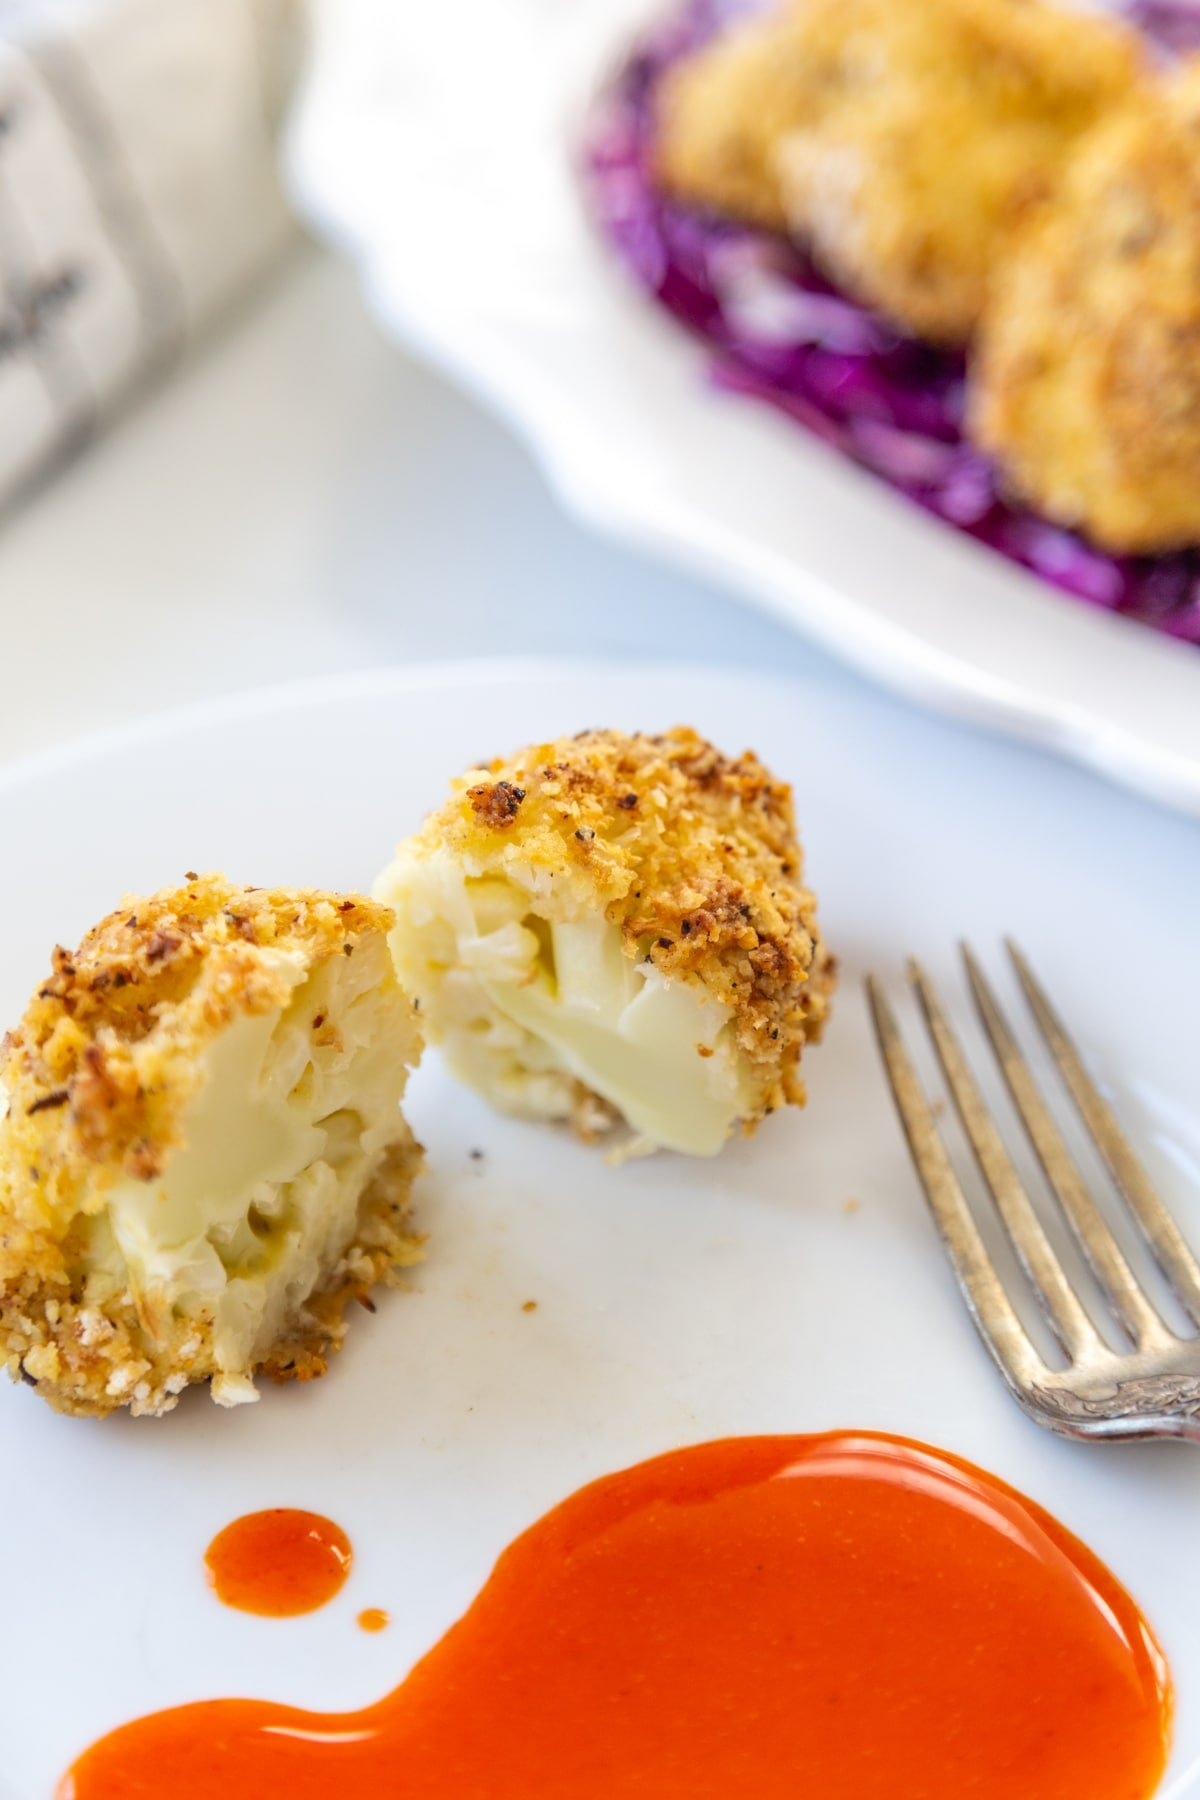 Crispy breaded cauliflower floret cut in half on a white plate with a silver fork and hot sauce on the plate, and a white platter of the cauliflower on a bed of red cabbage in the background.